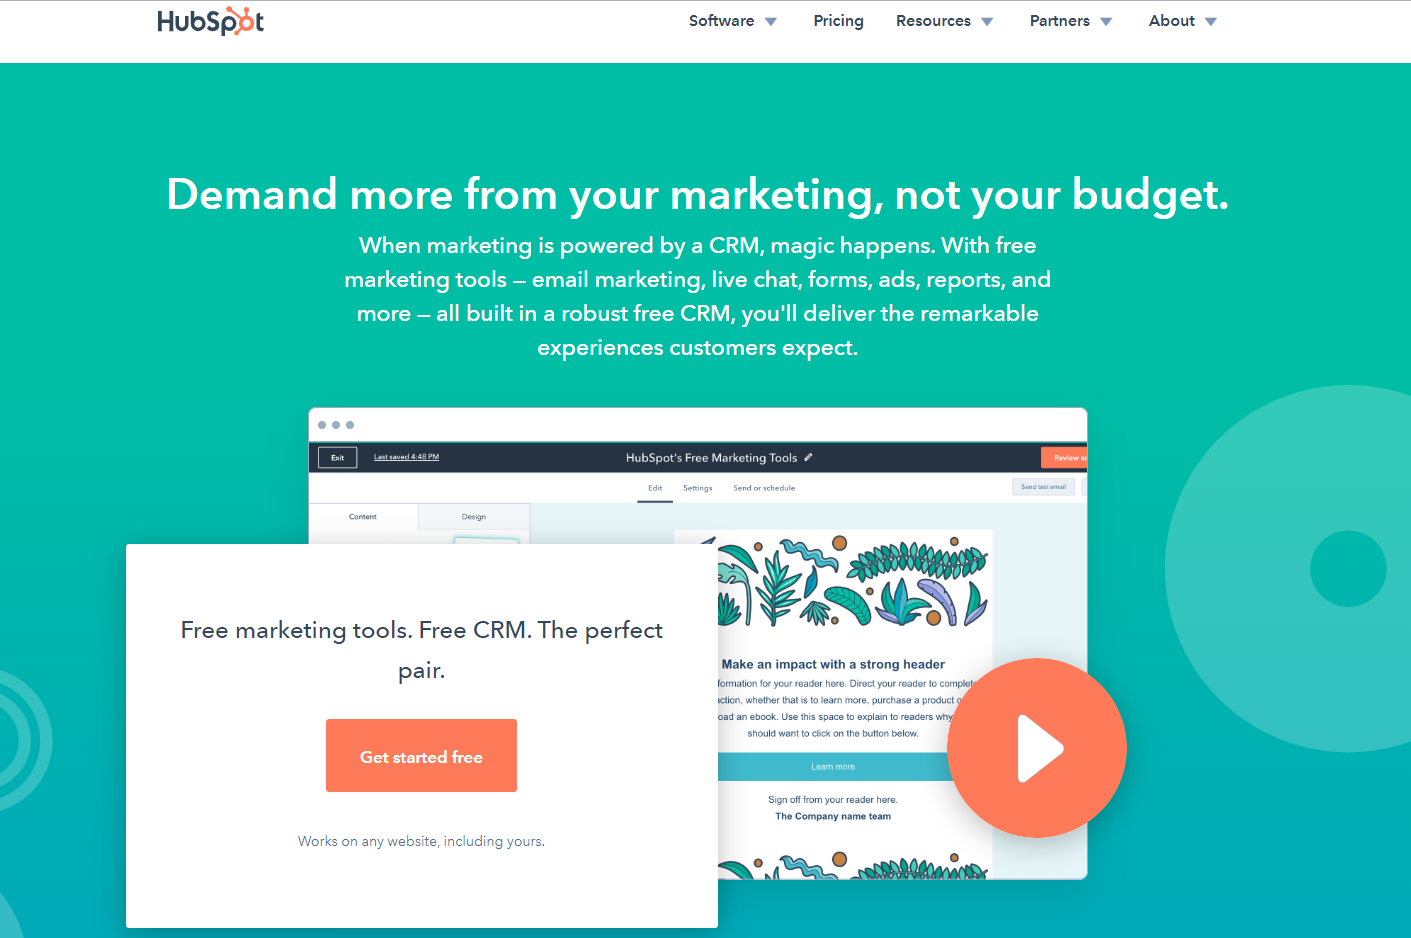 Go to HubSpot website and click 'Get Started Free'.